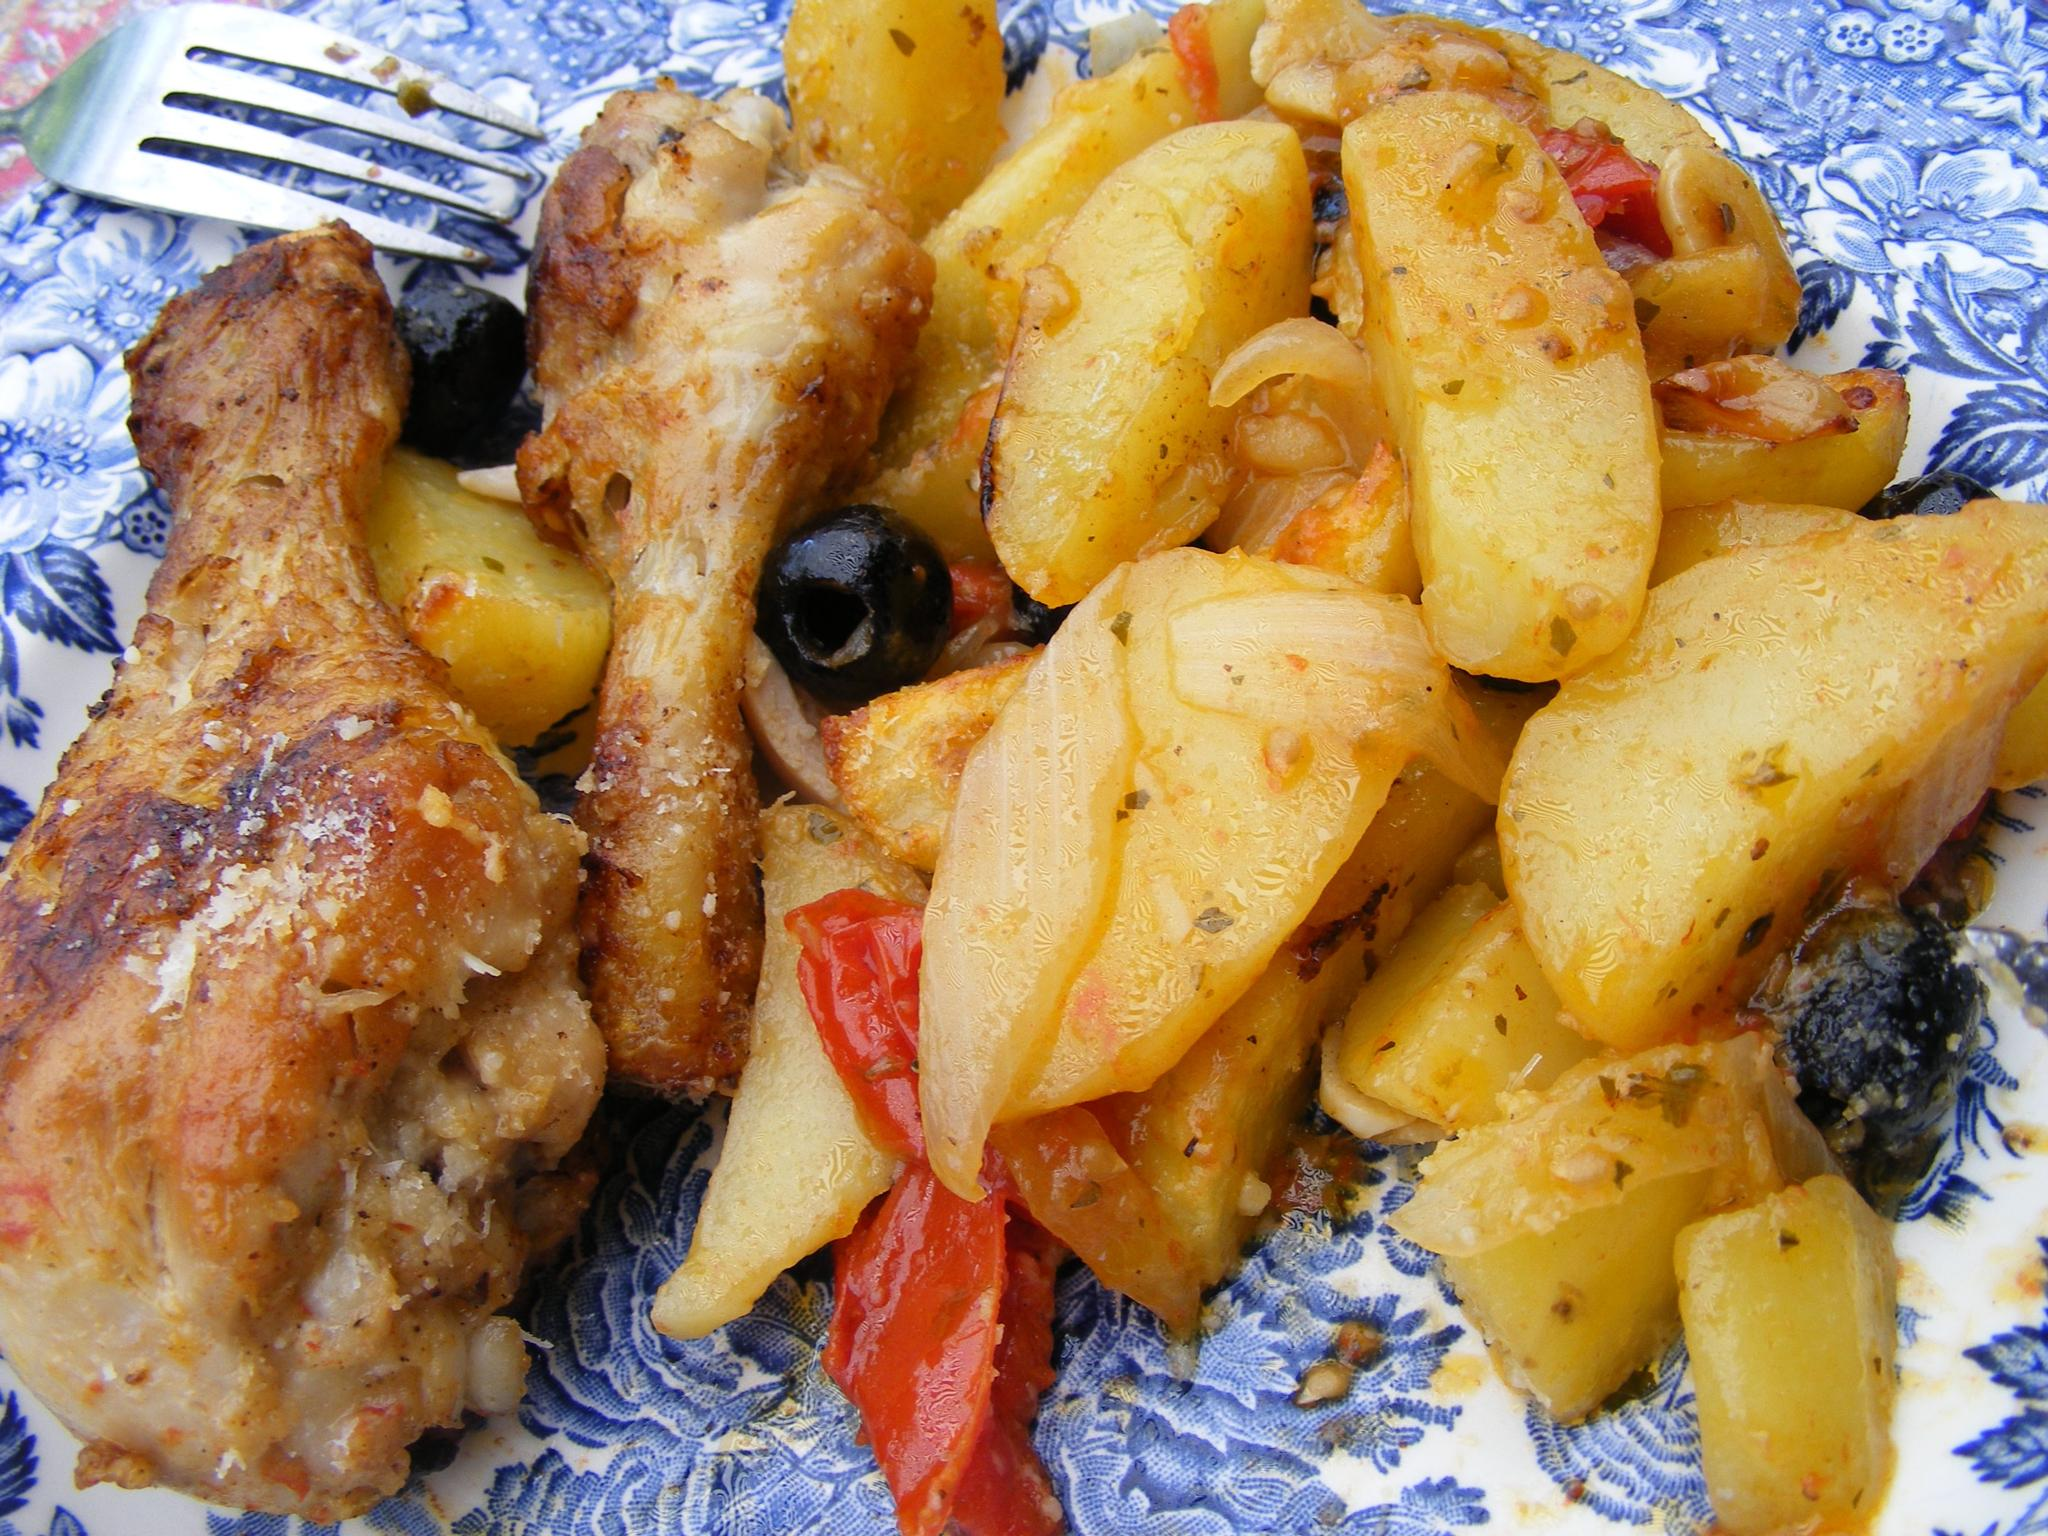 Pollo e patate. by swernthaler